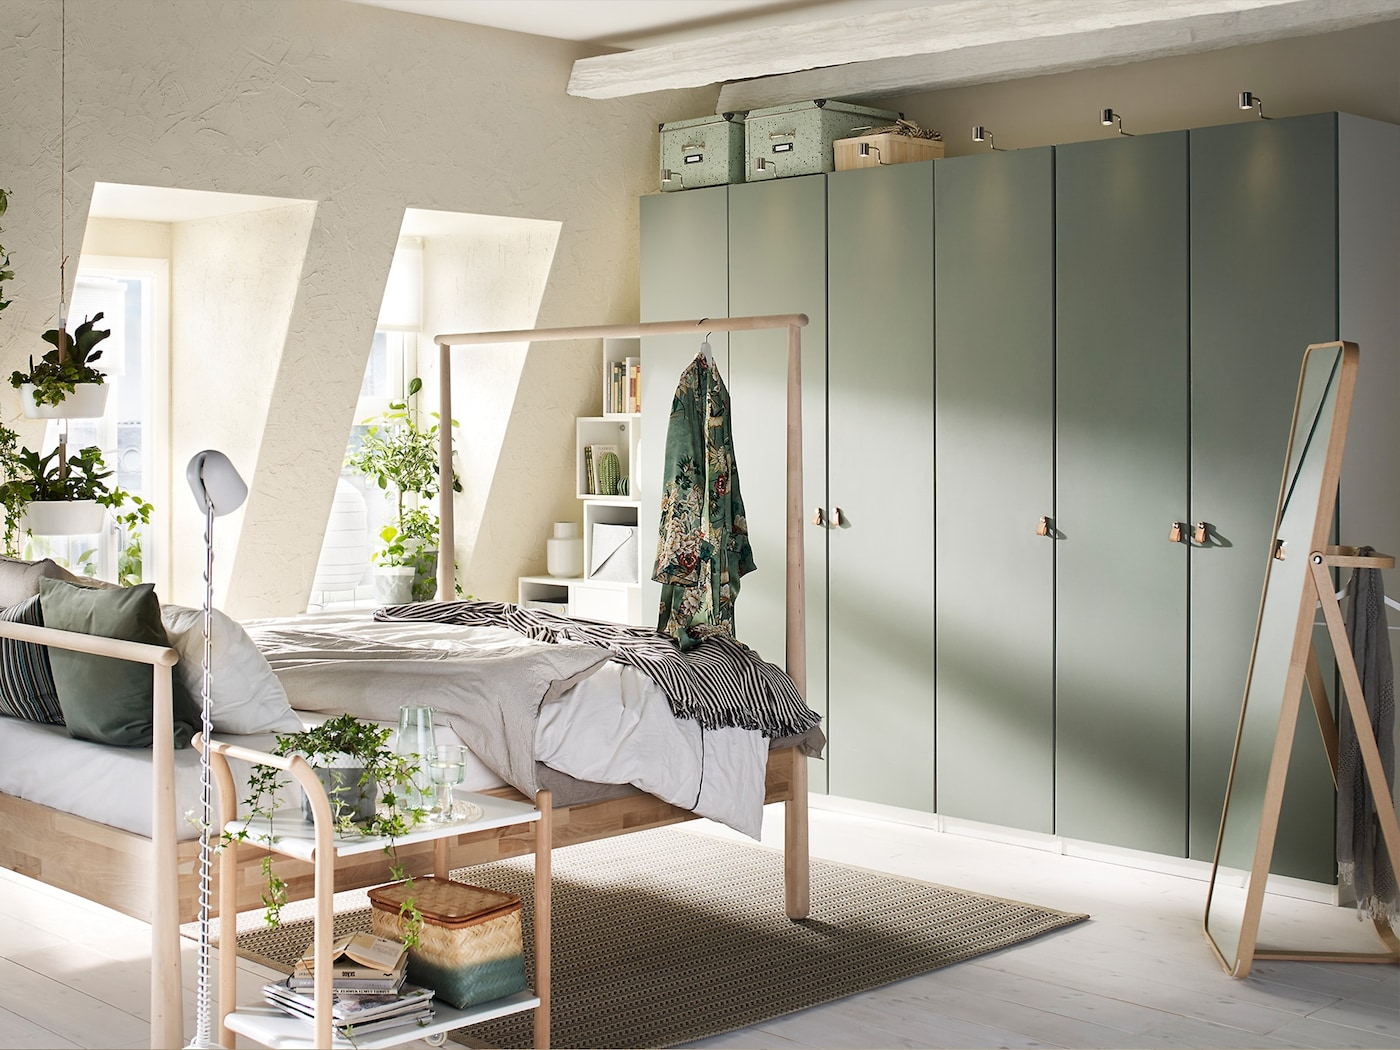 Use natural light and muted tones for a calming bedroom to relax the mind